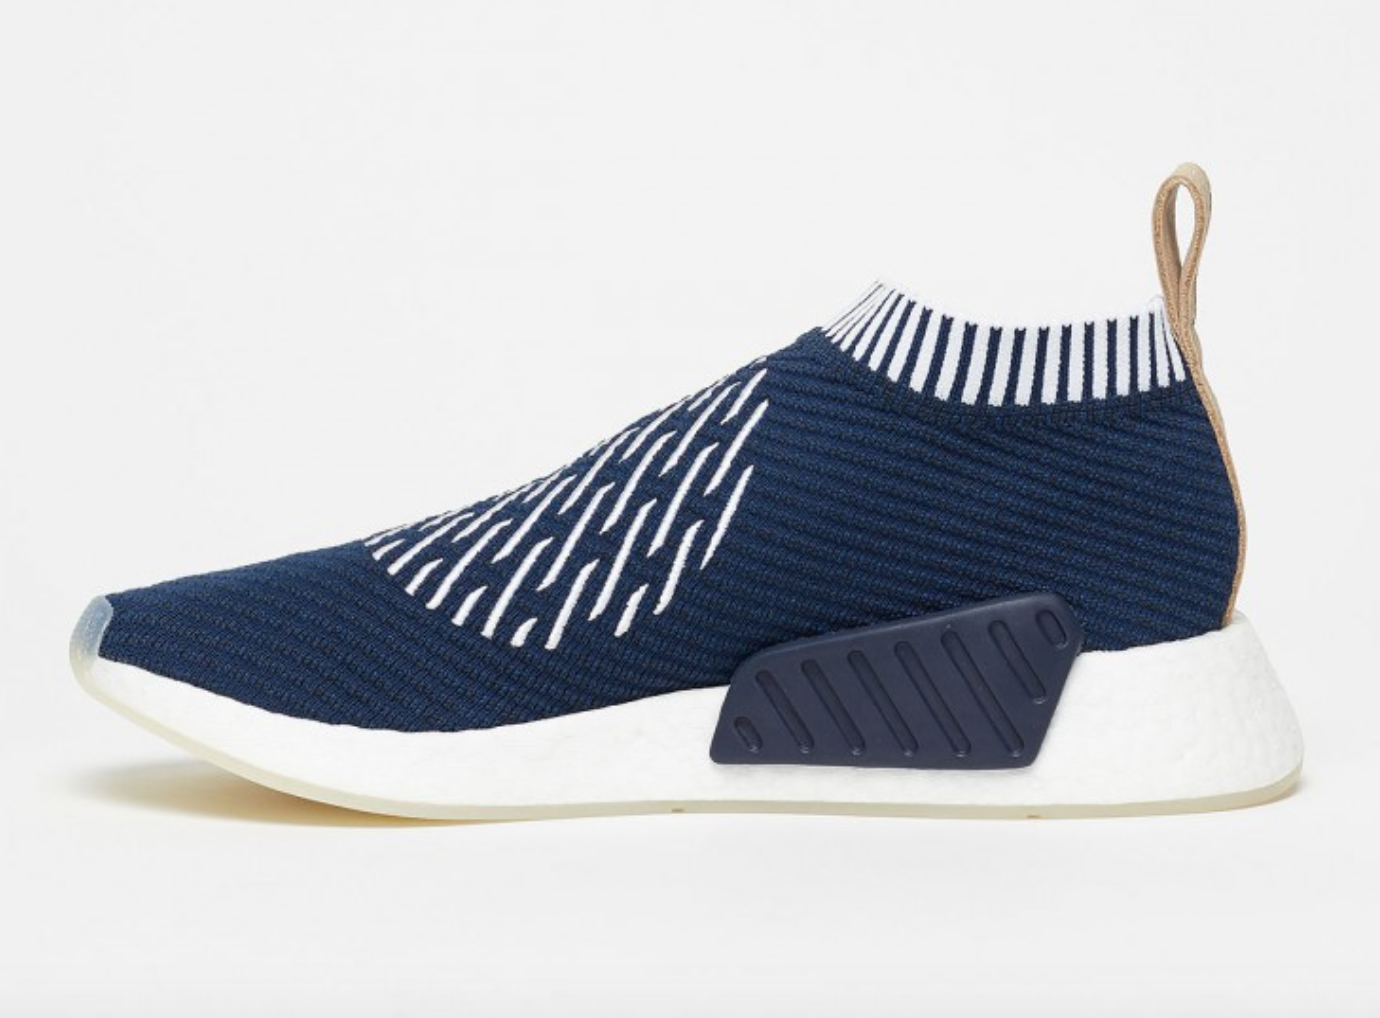 A Striped Finish On This Upcoming adidas NMD City Sock 2